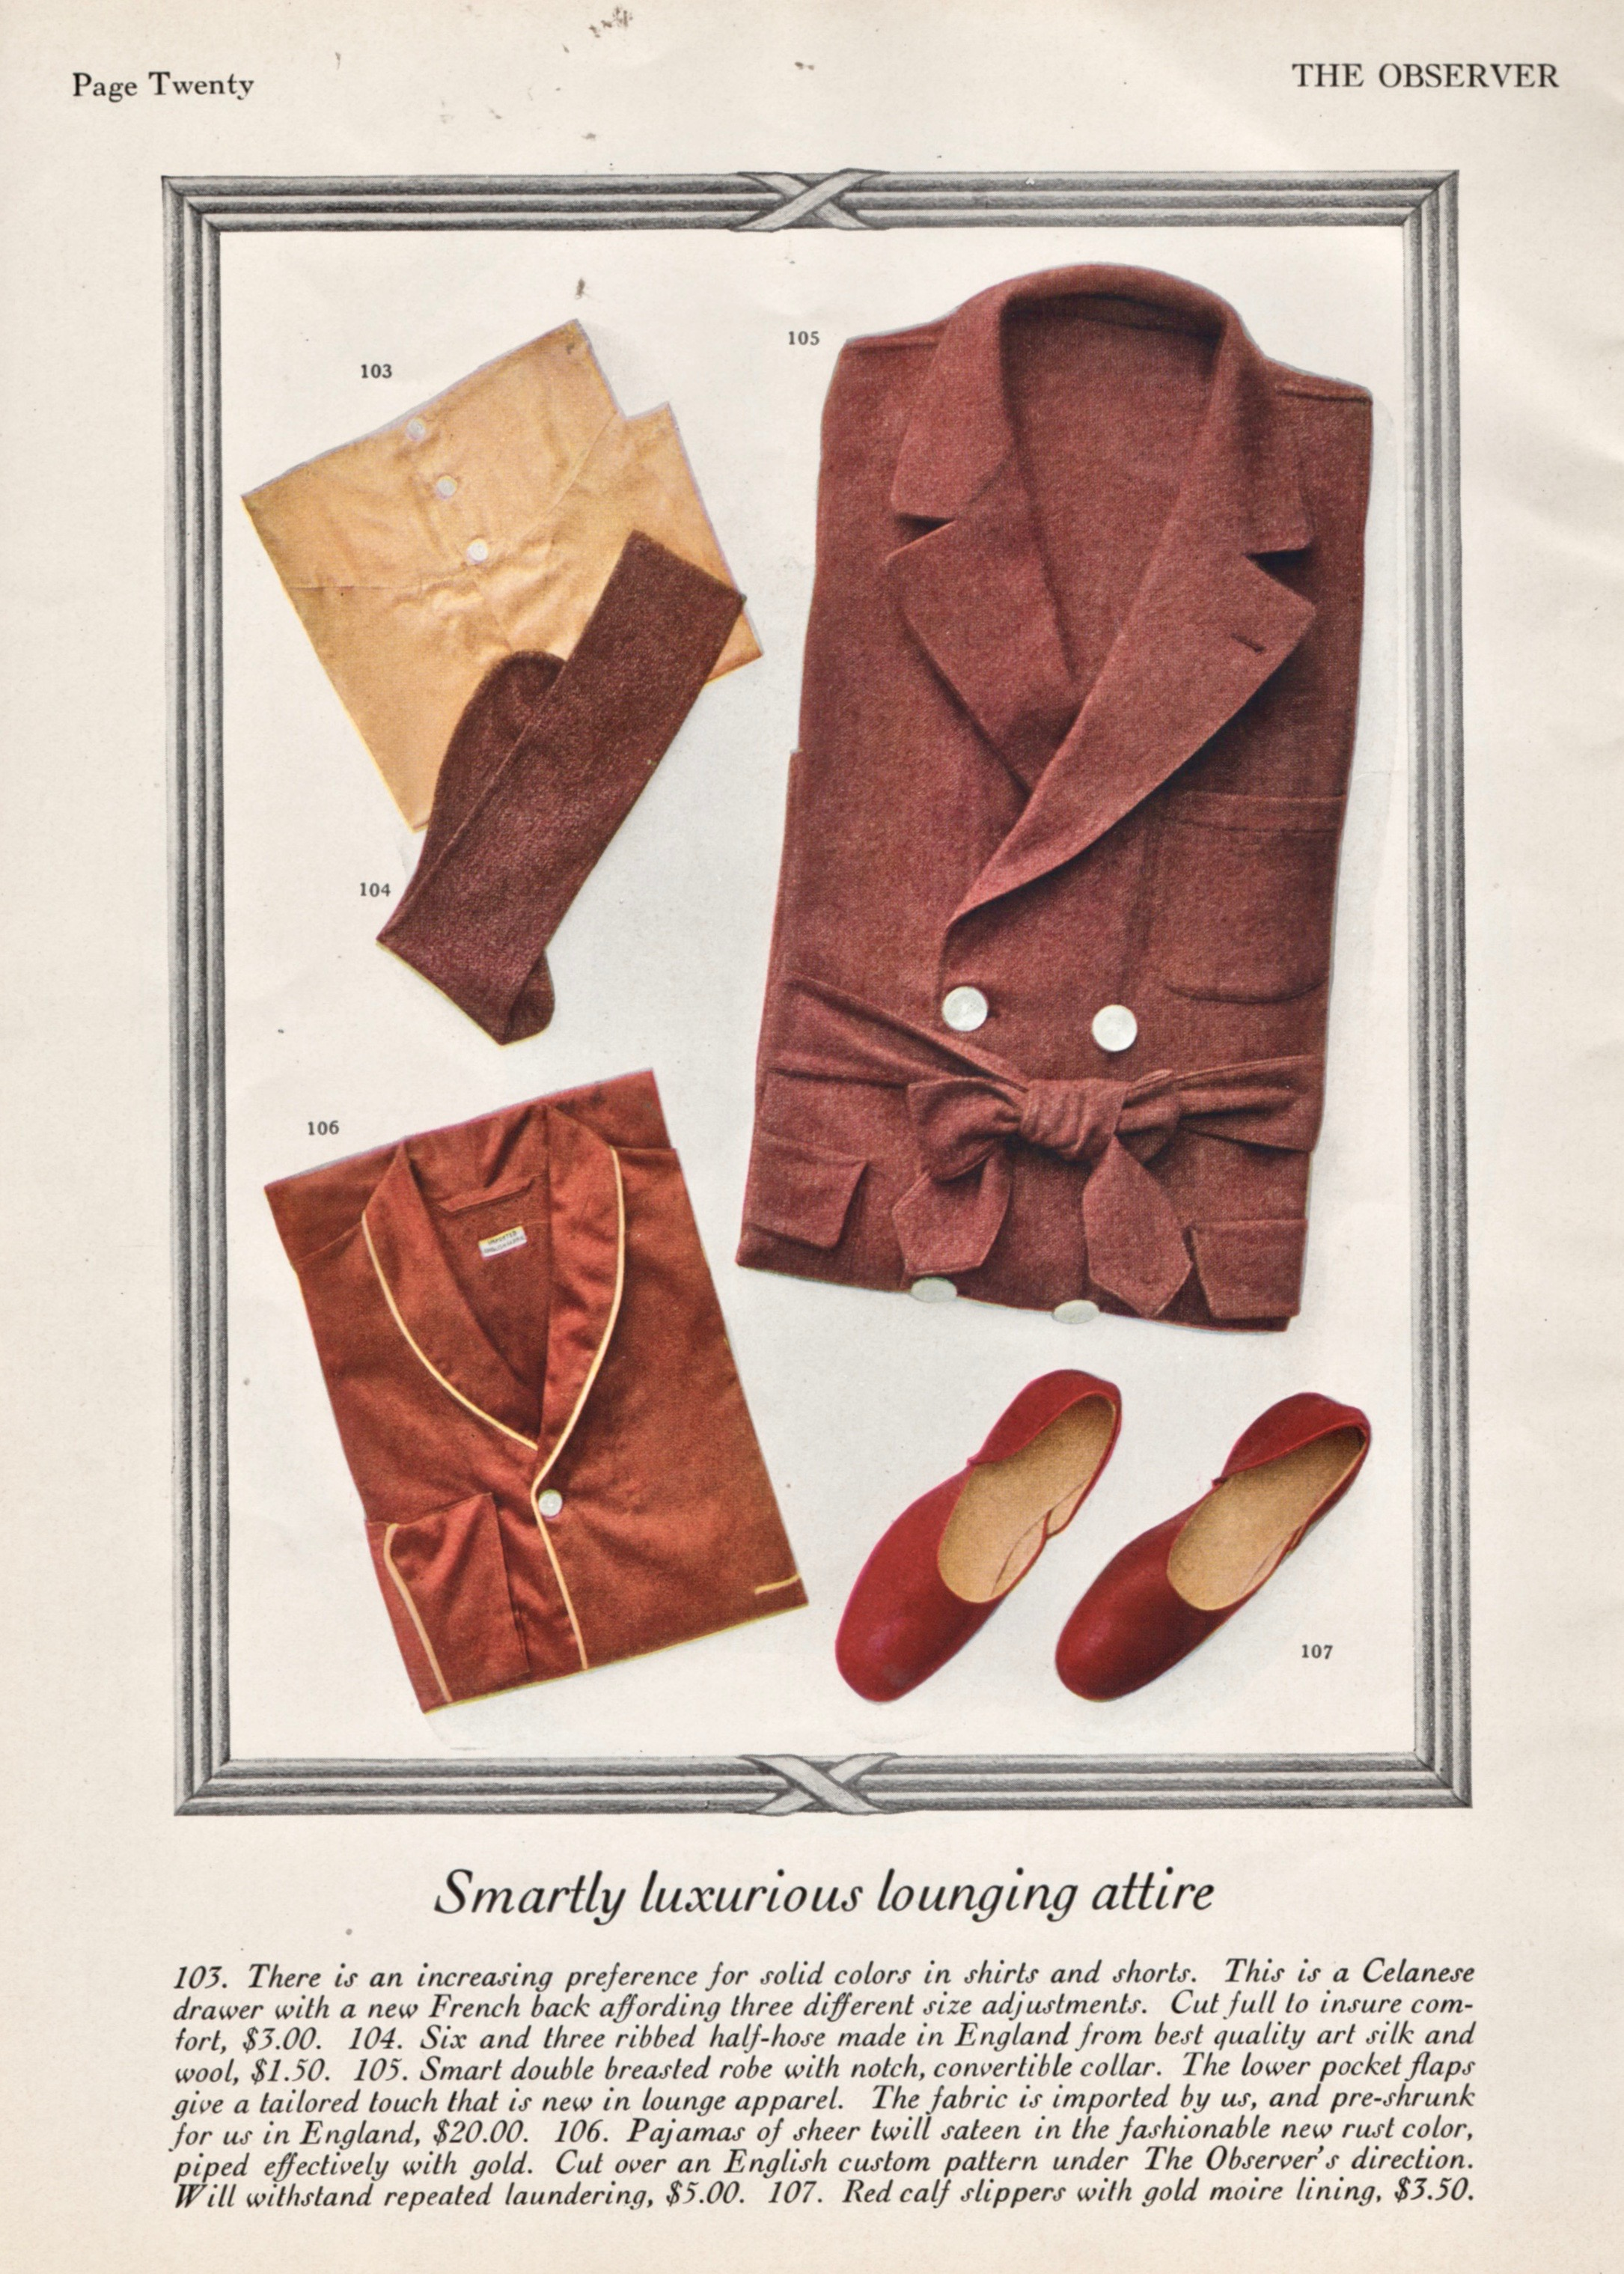 And this is what the well-dressed dandy of 1929 wears to lounge about.